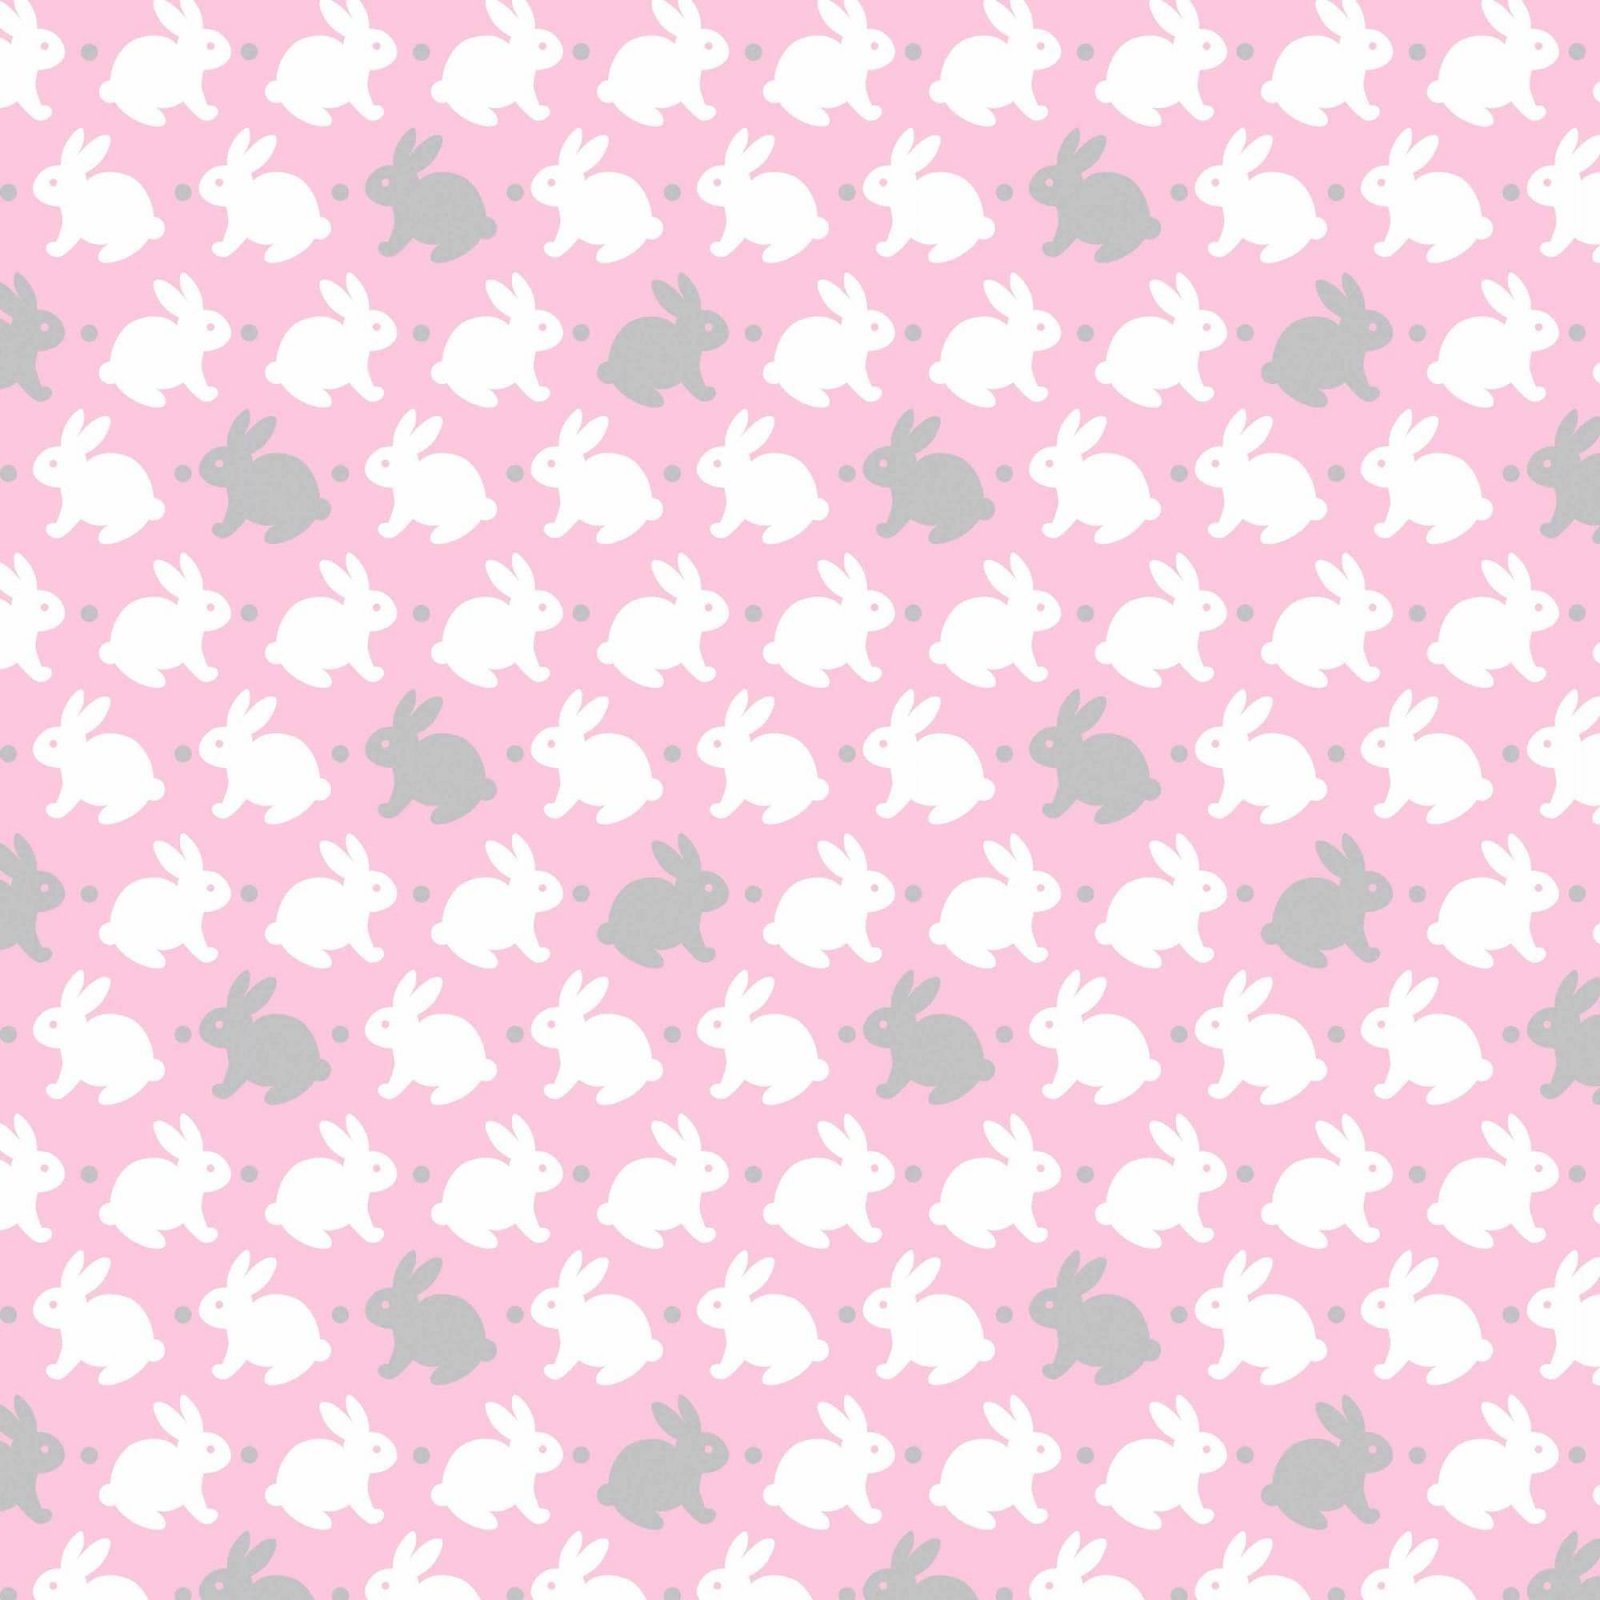 Flannel-Bedtime Bunny                                                              Pink /Gray